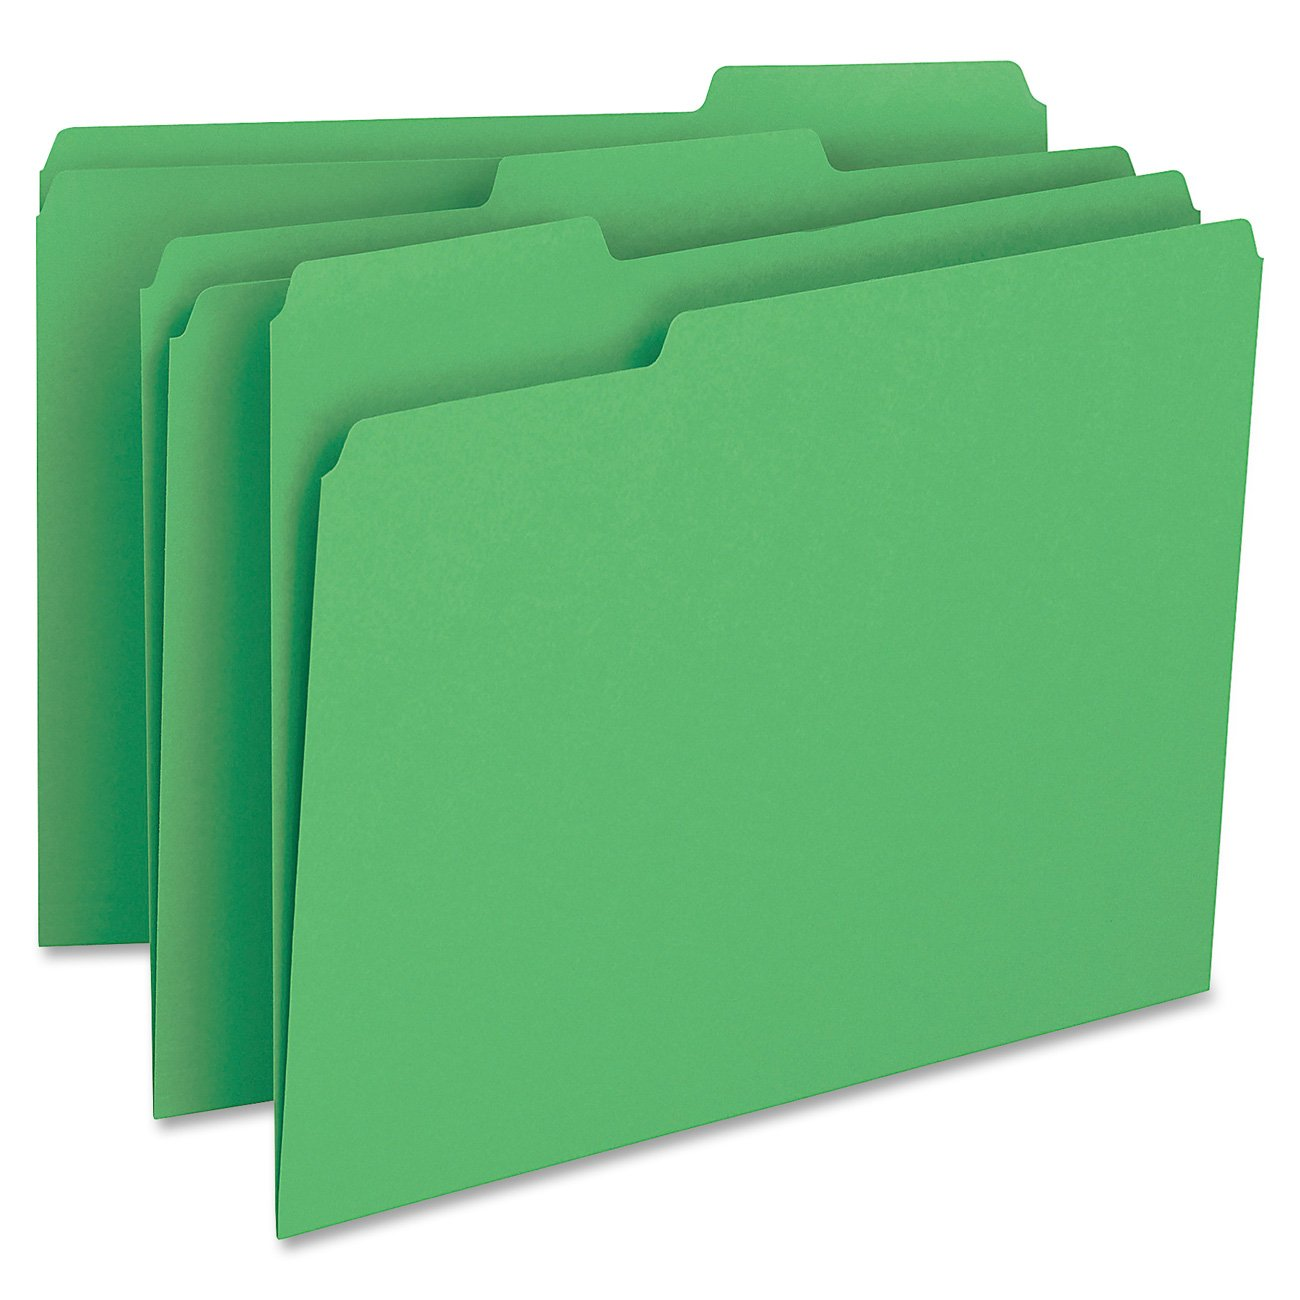 Amazon.com : Smead File Folder, 1/3-Cut Tab, Letter Size, Green ...